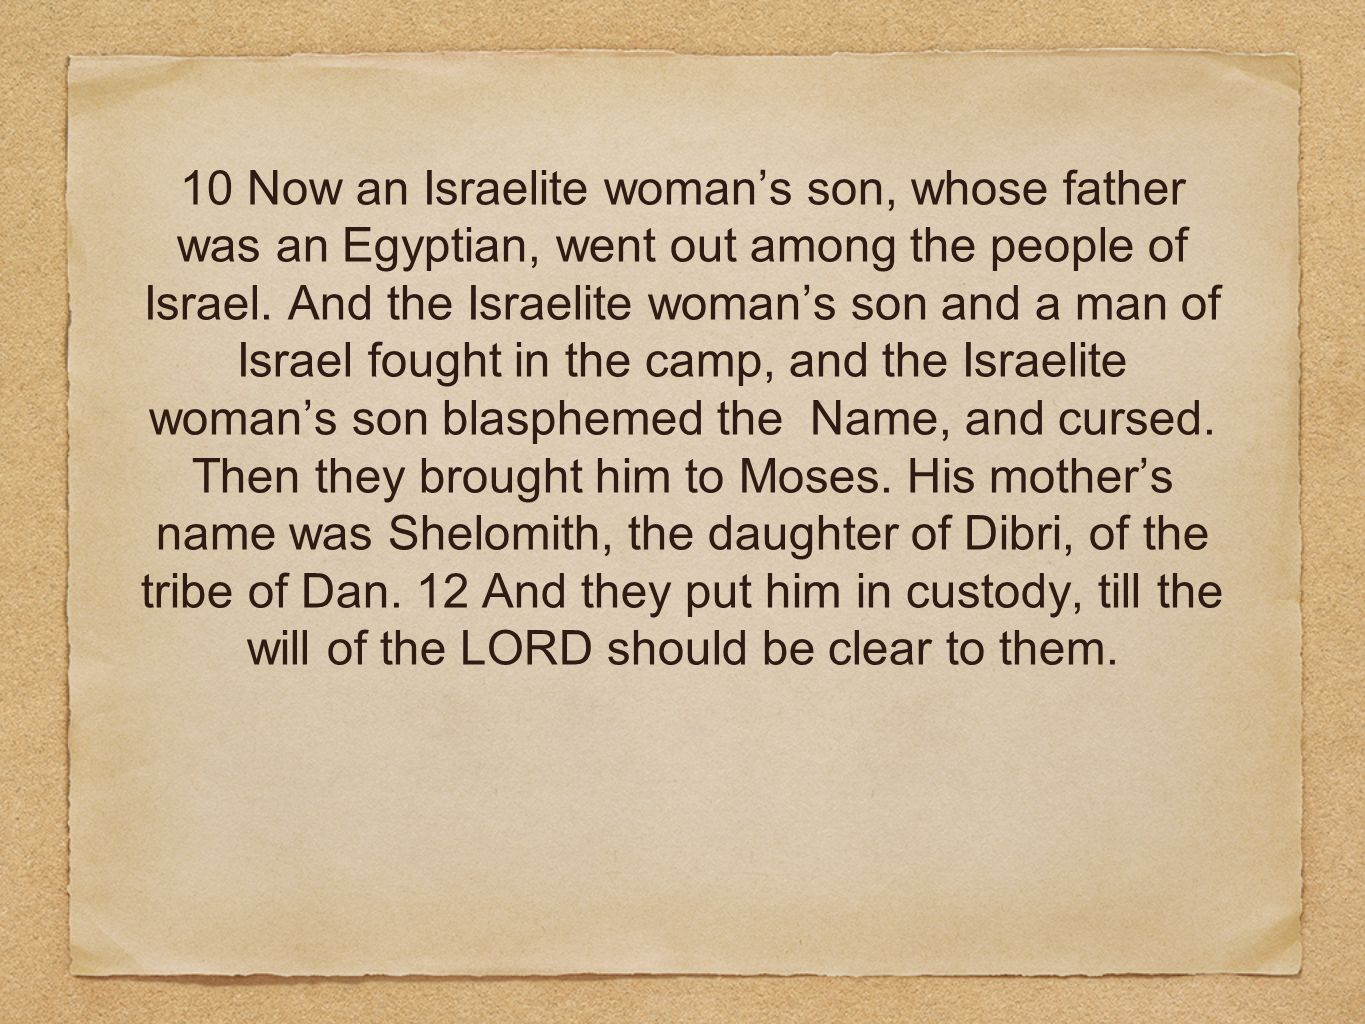 10 Now an Israelite womans son, whose father was an Egyptian, went out among the people of Israel. And the Israelite womans son and a man of Israel fo